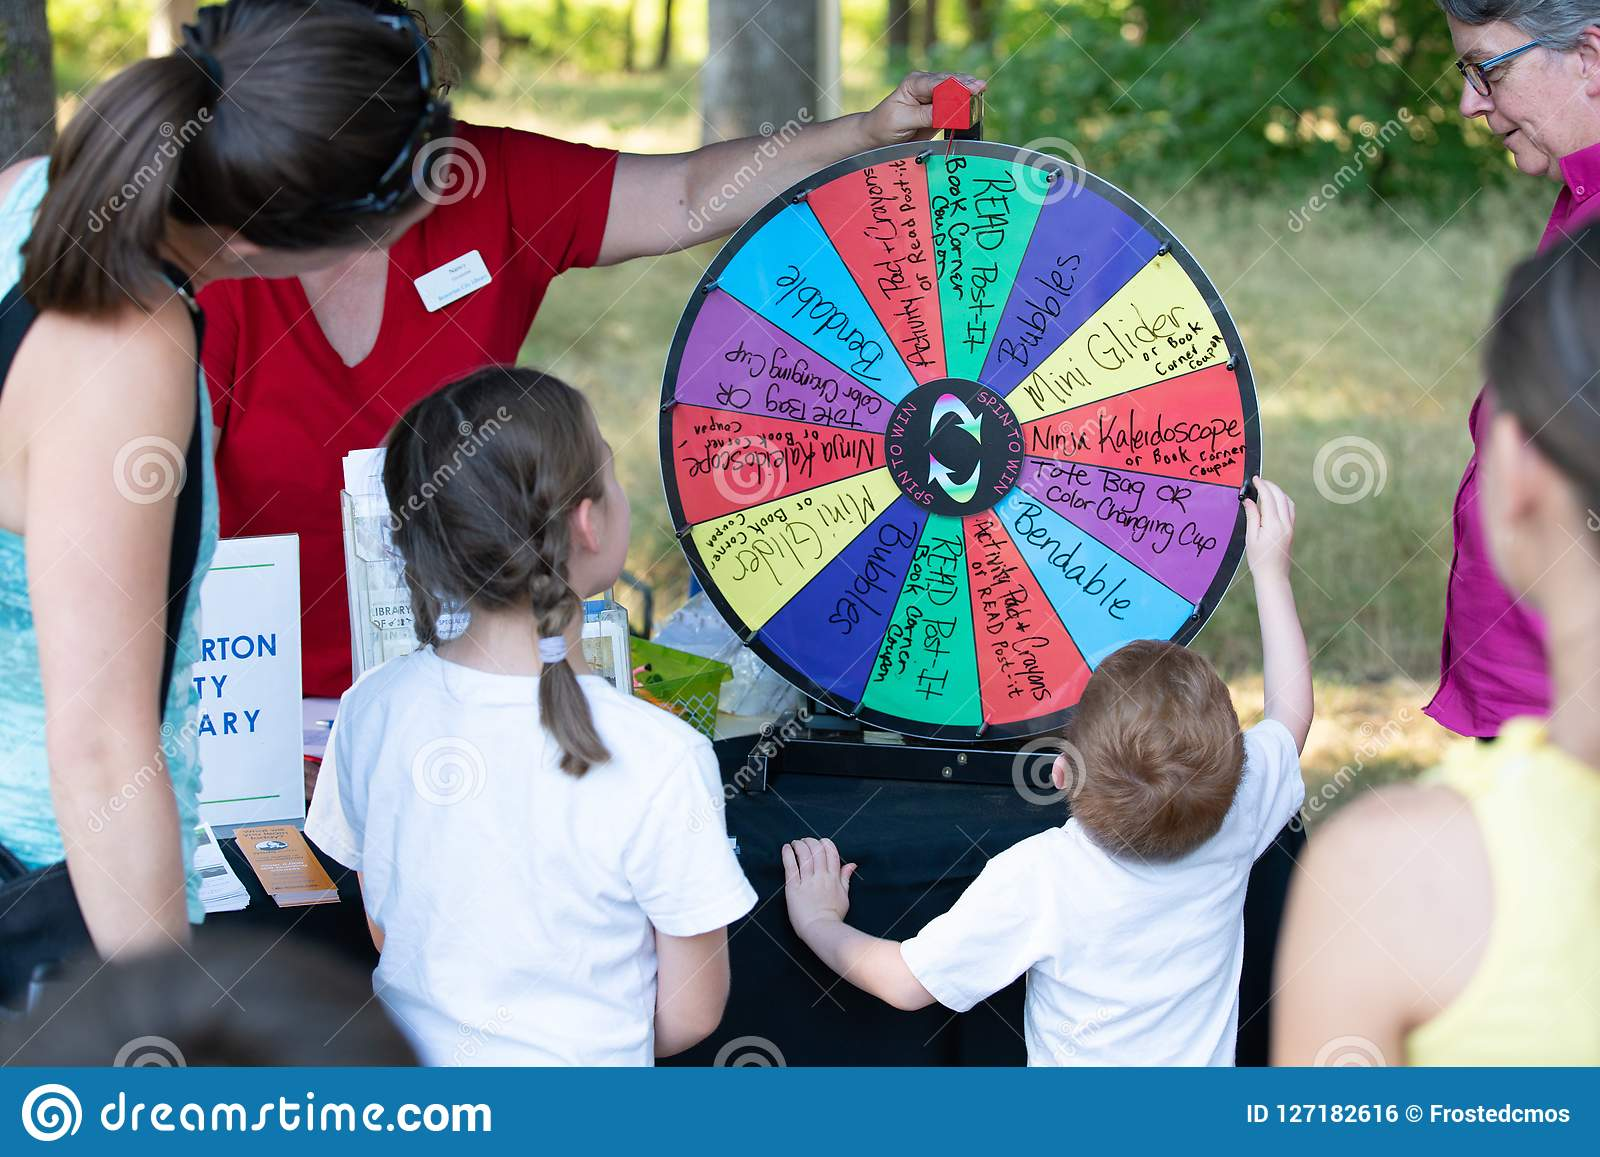 Child spinning the wheel raffle in the park